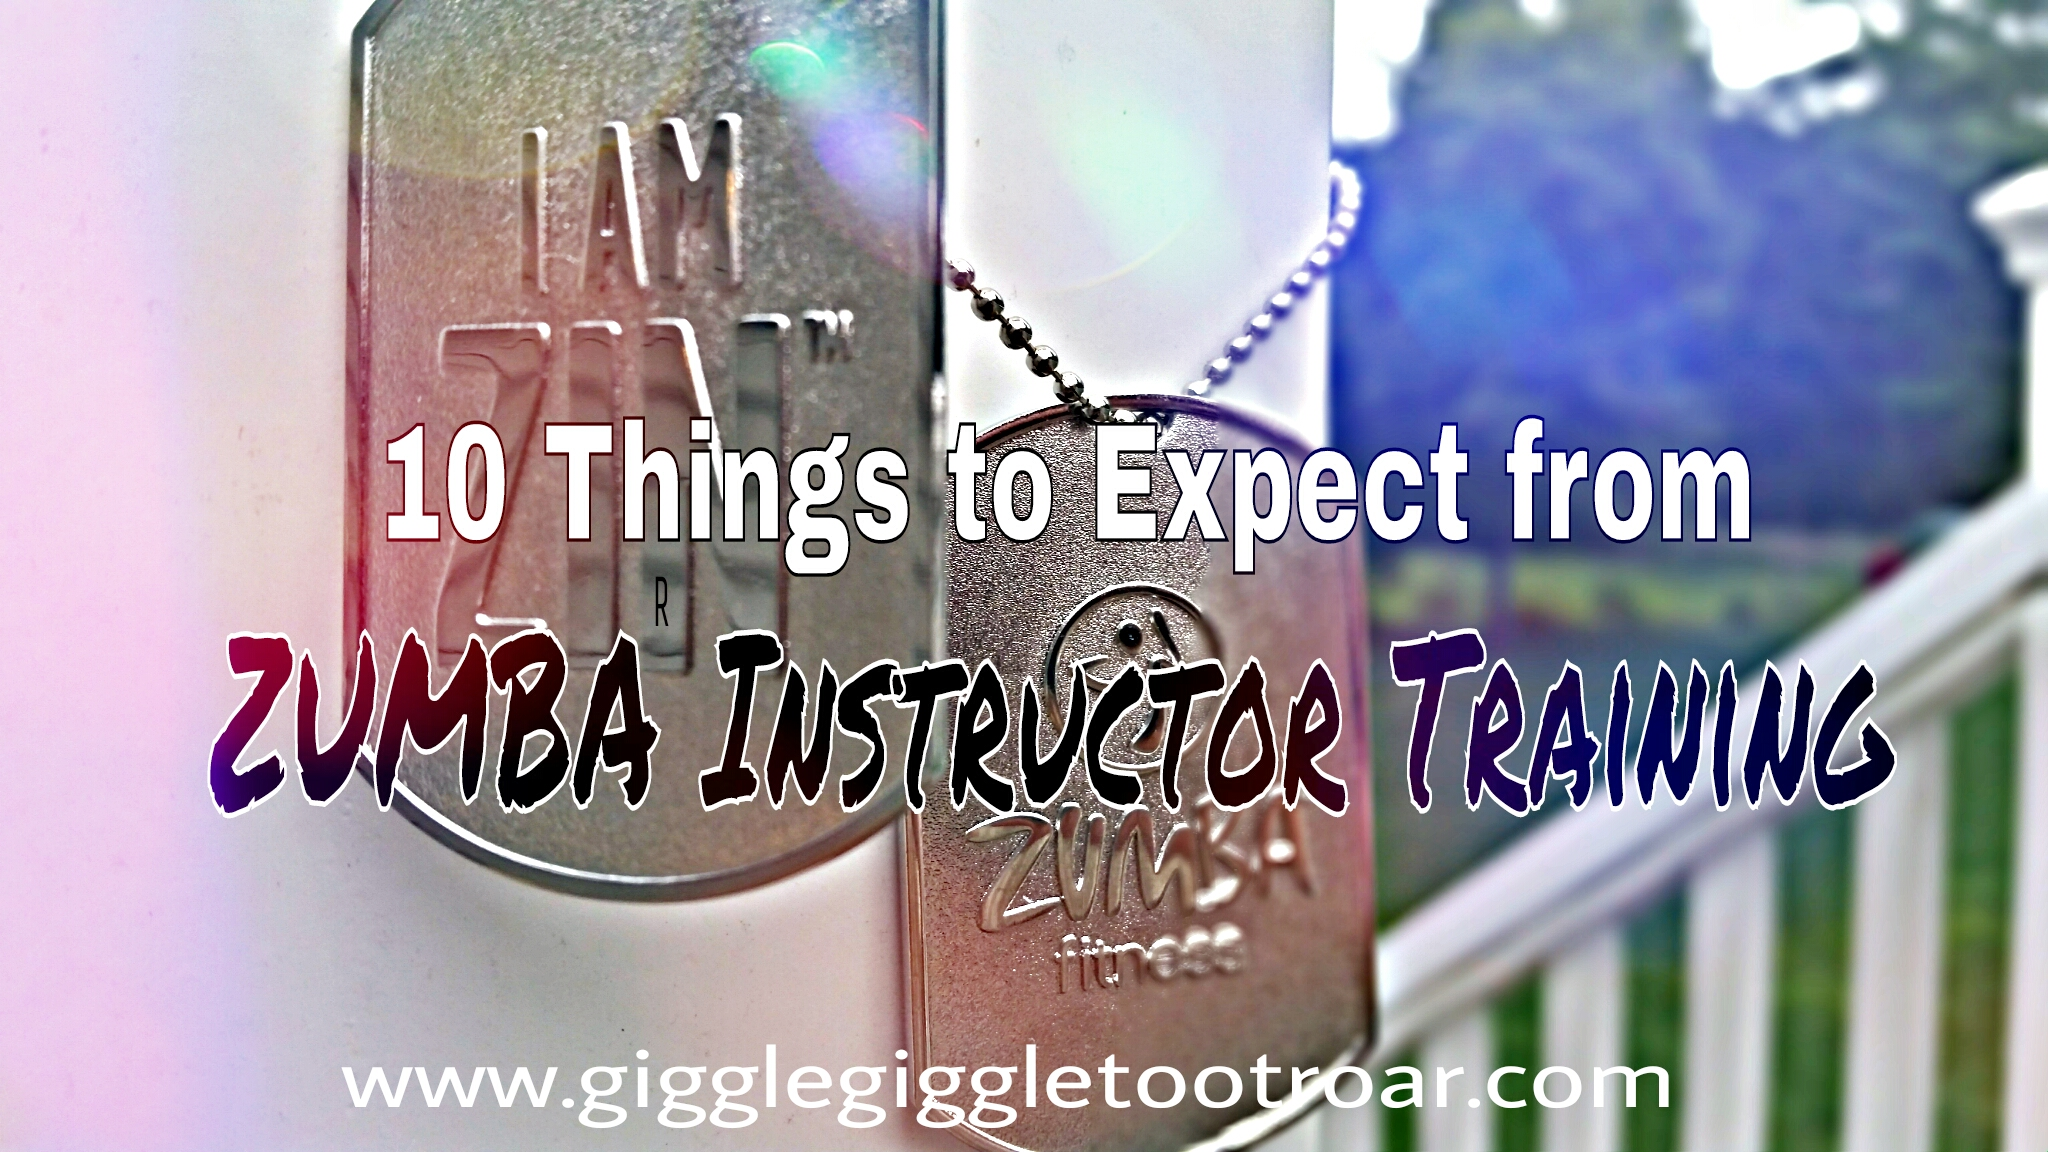 10 Things To Expect from ZUMBA® Instructor Training | Giggle Giggle ...